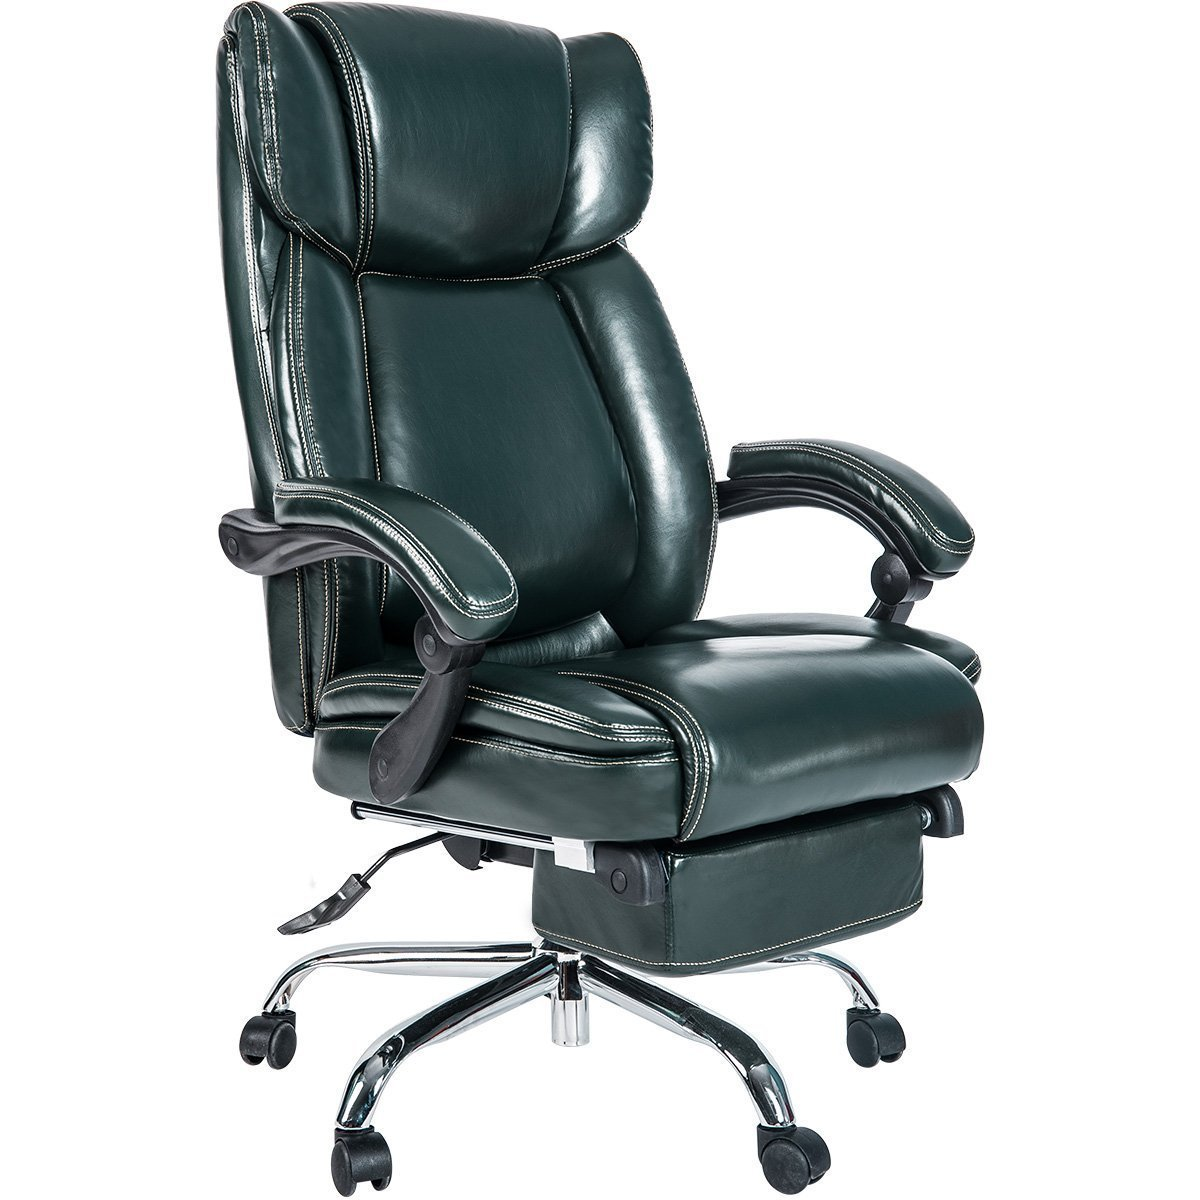 Merax inno series executive high back napping chair home for Best home office chair under 200